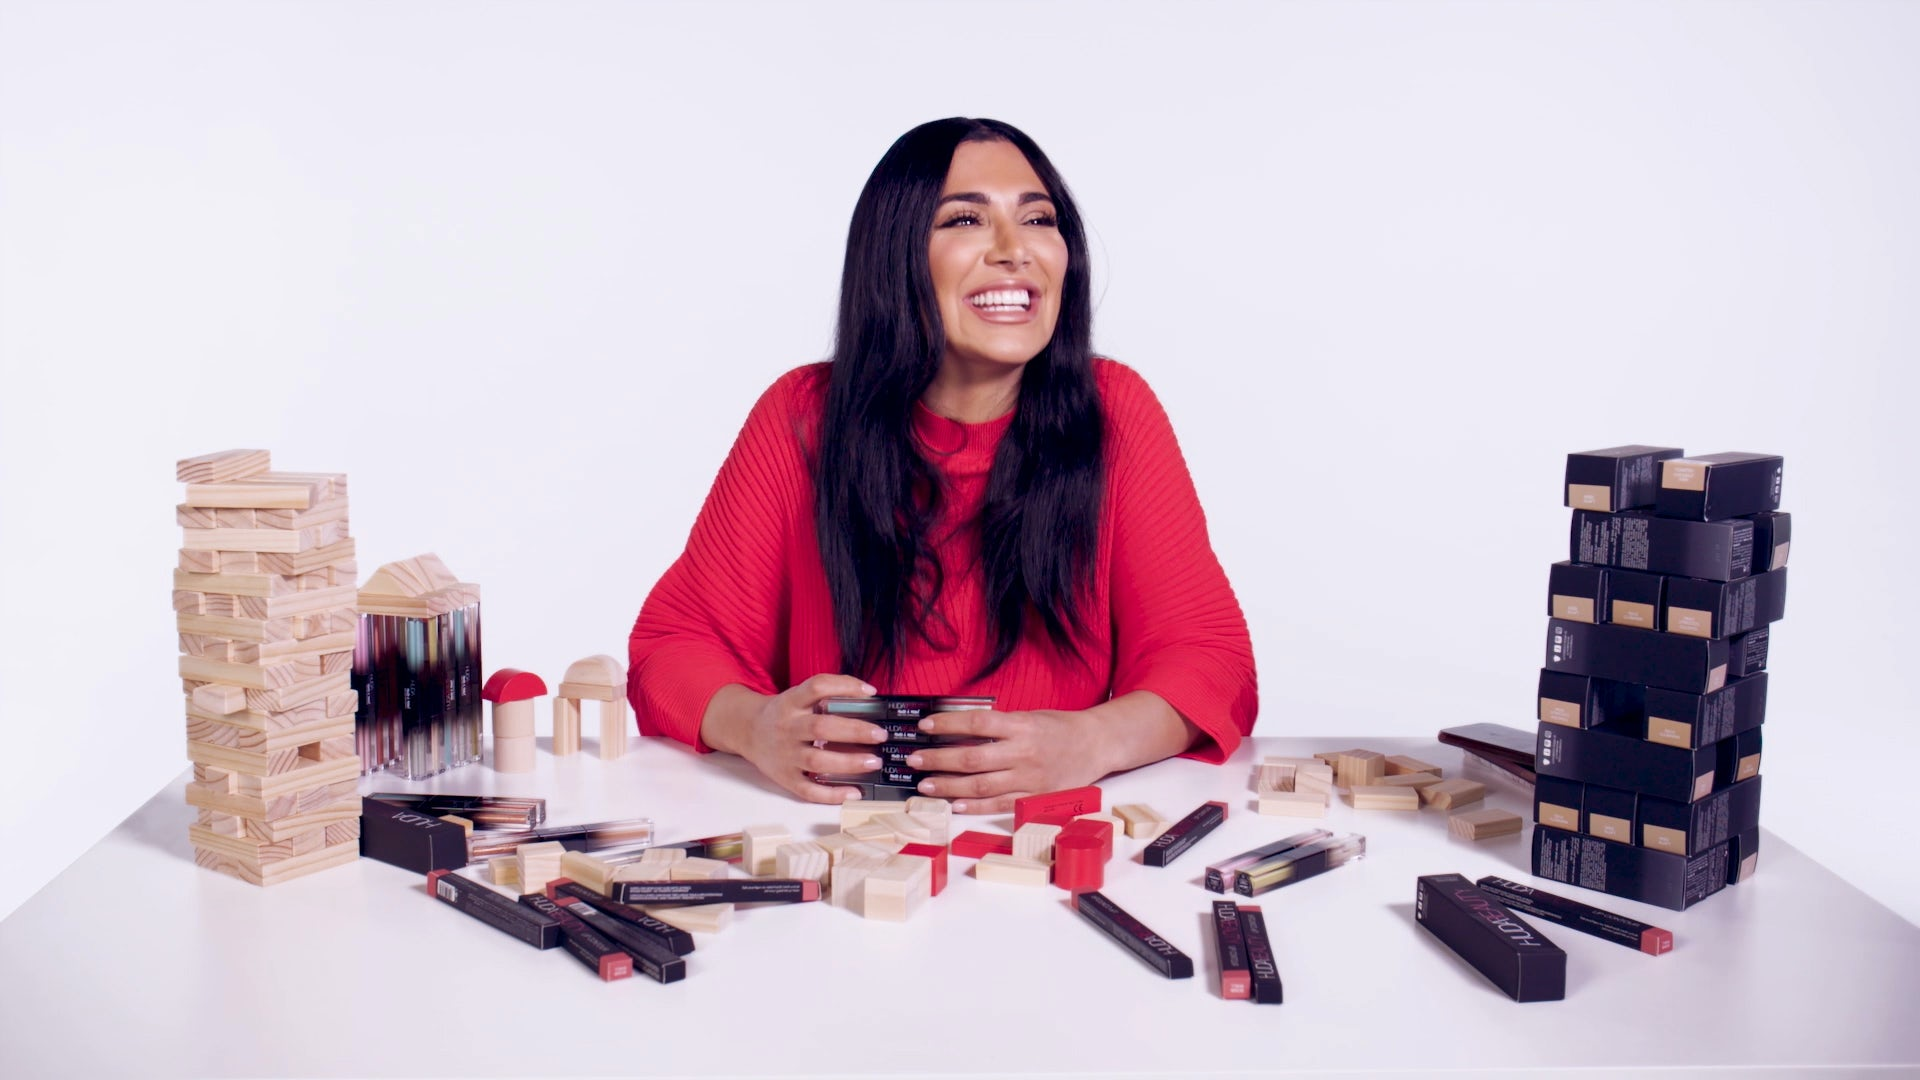 None of Your Business with Huda Kattan